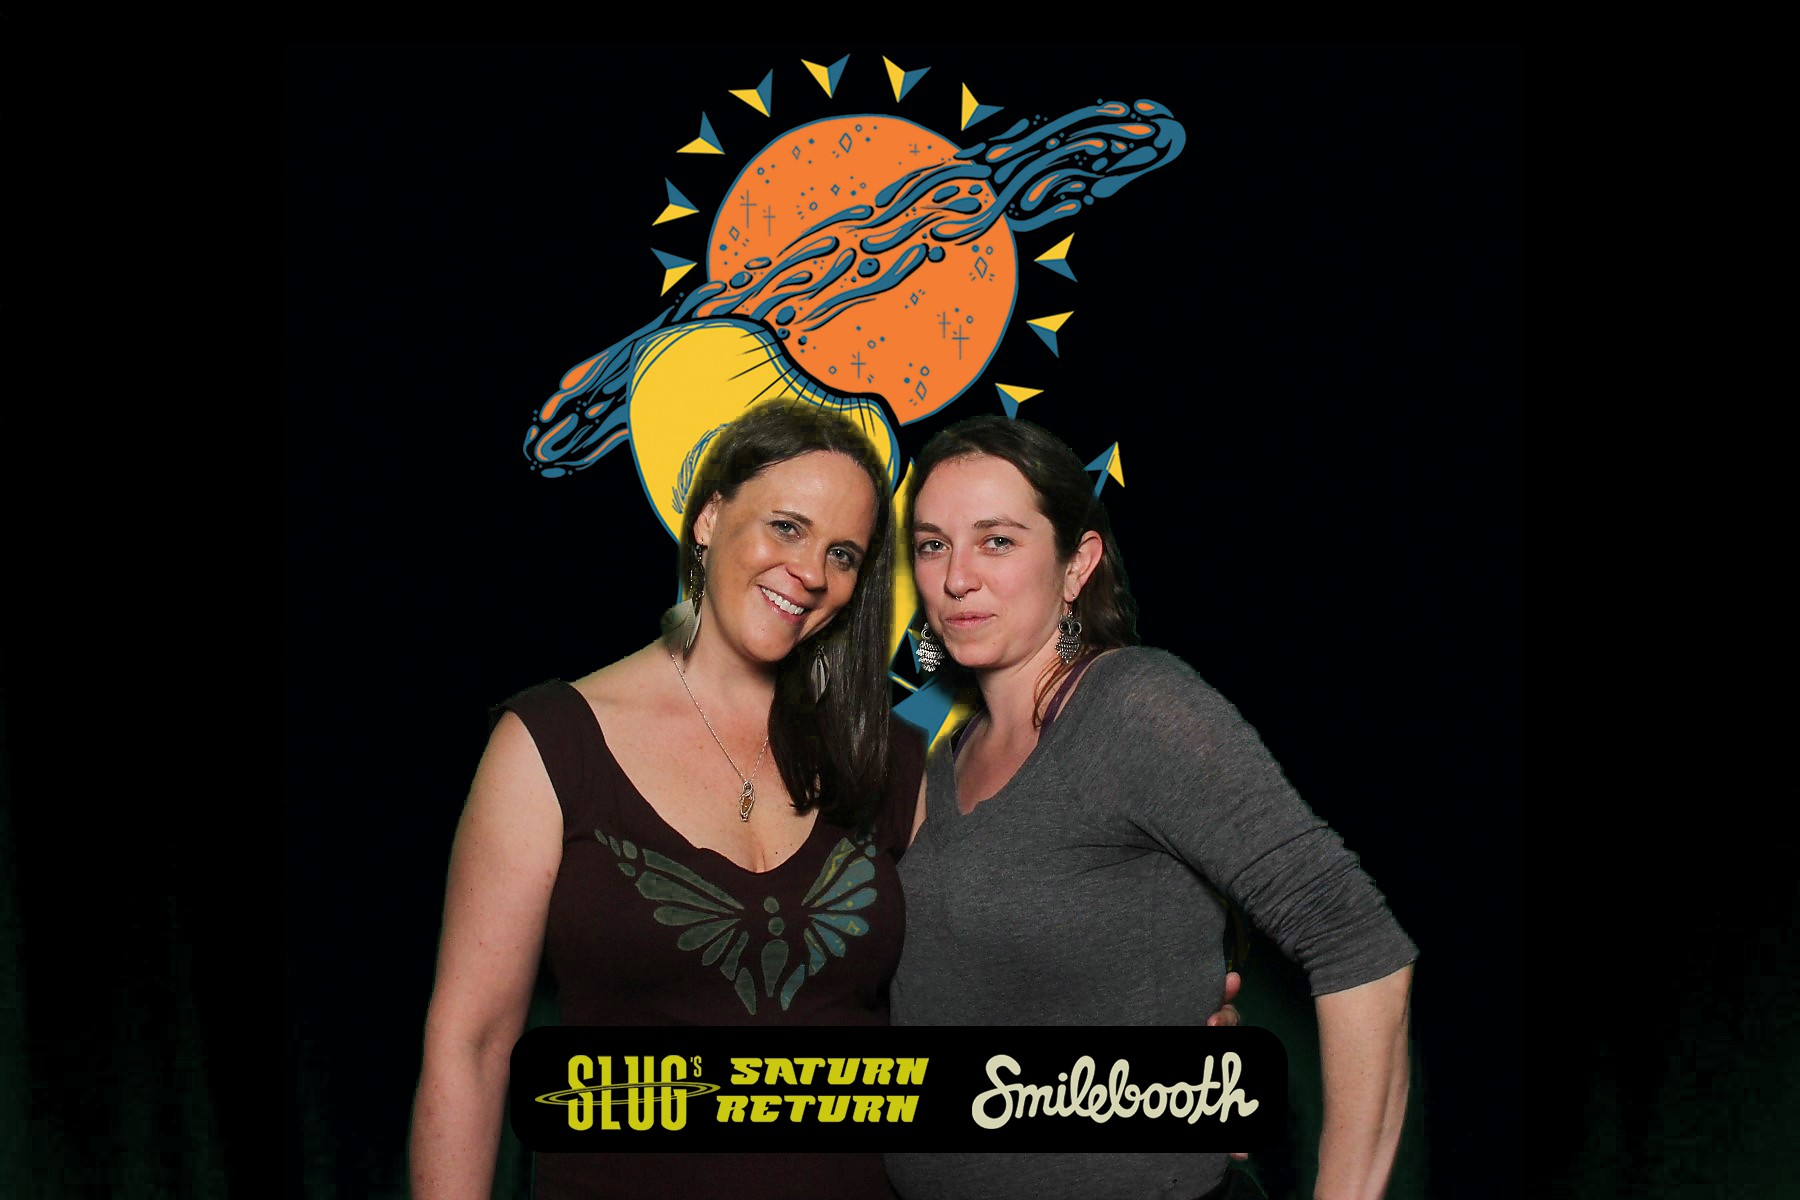 Smilebooth Photo